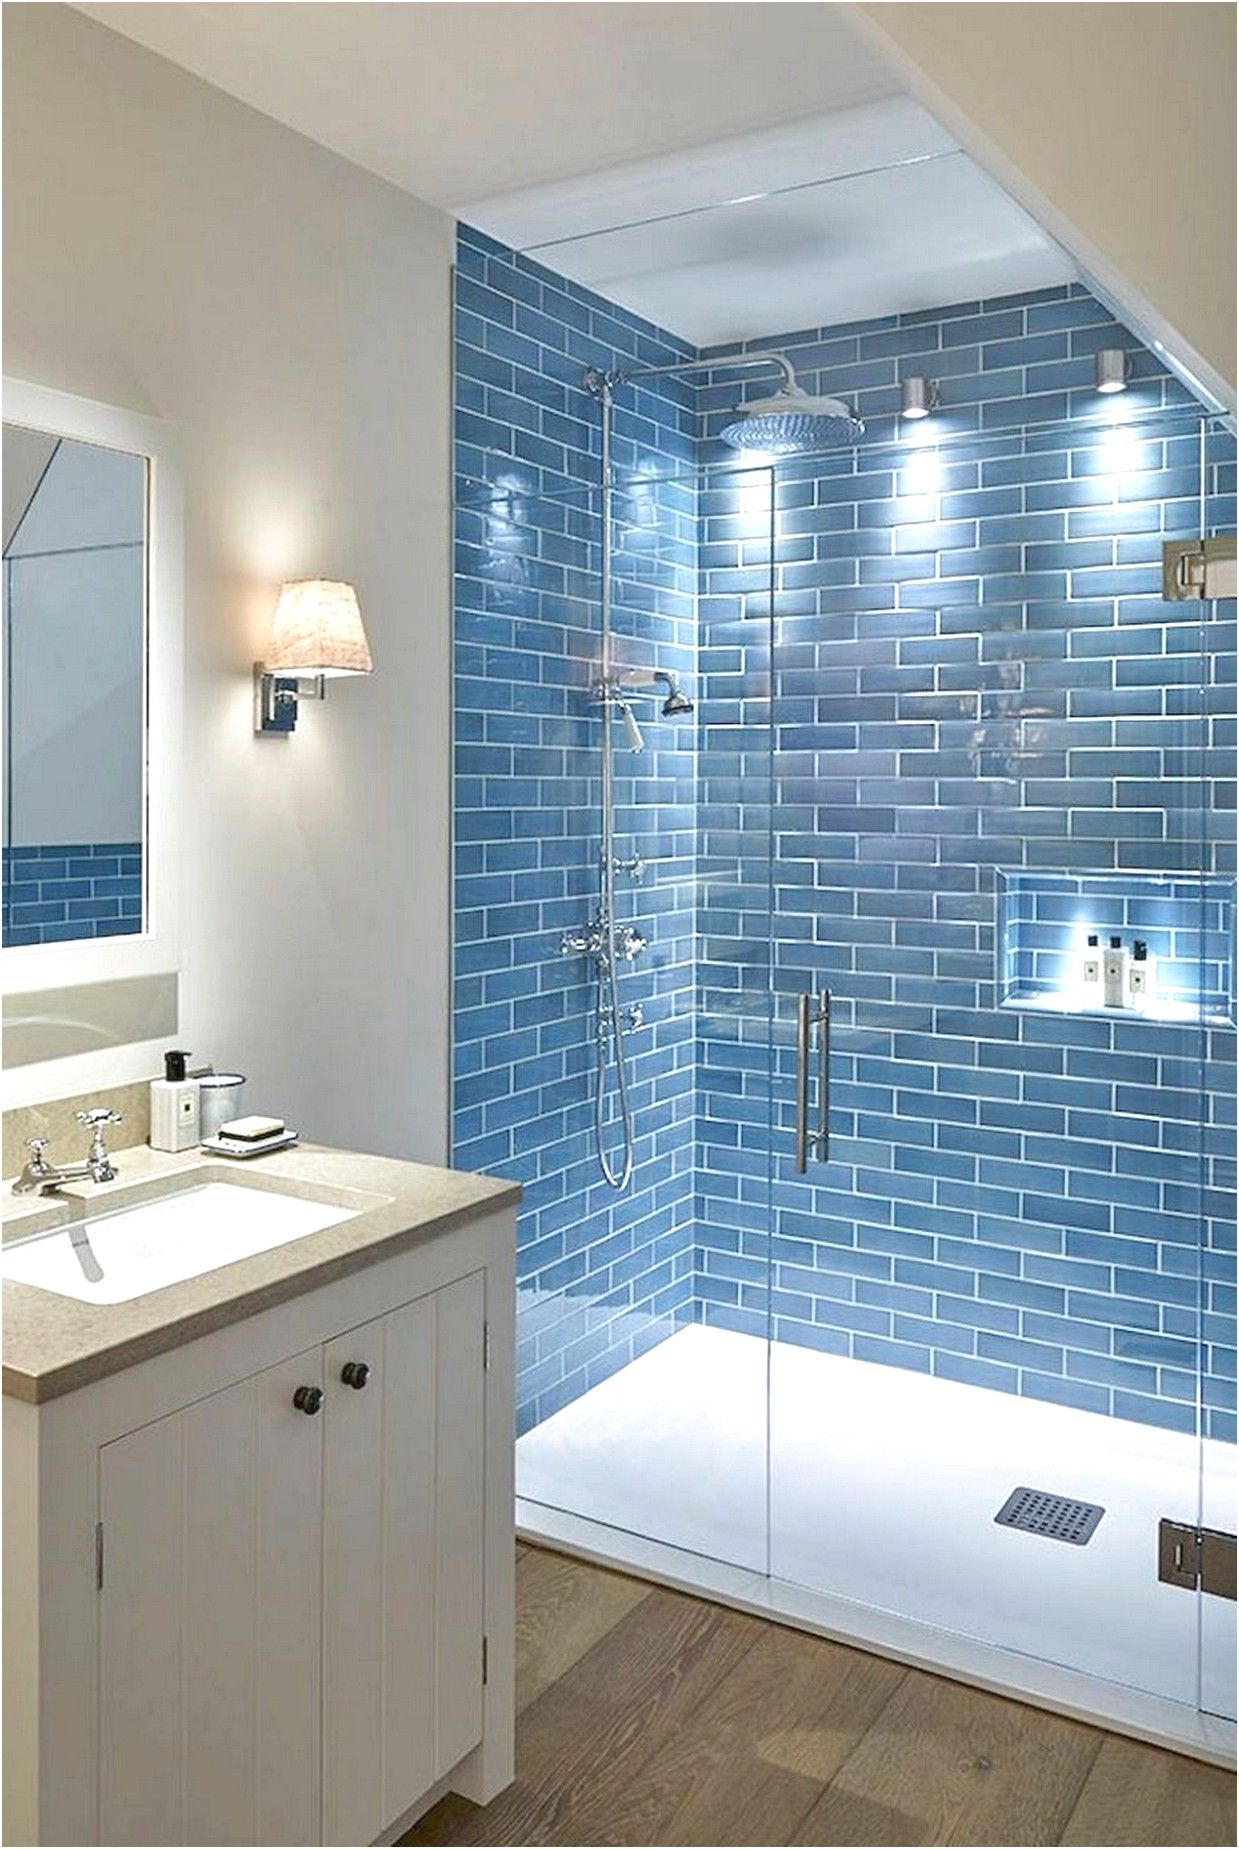 50 Amazing Inspiration For Bathroom Remodel Ideas Small Bathroom Remodel Small Bathroom Makeover Gorgeous Bathroom